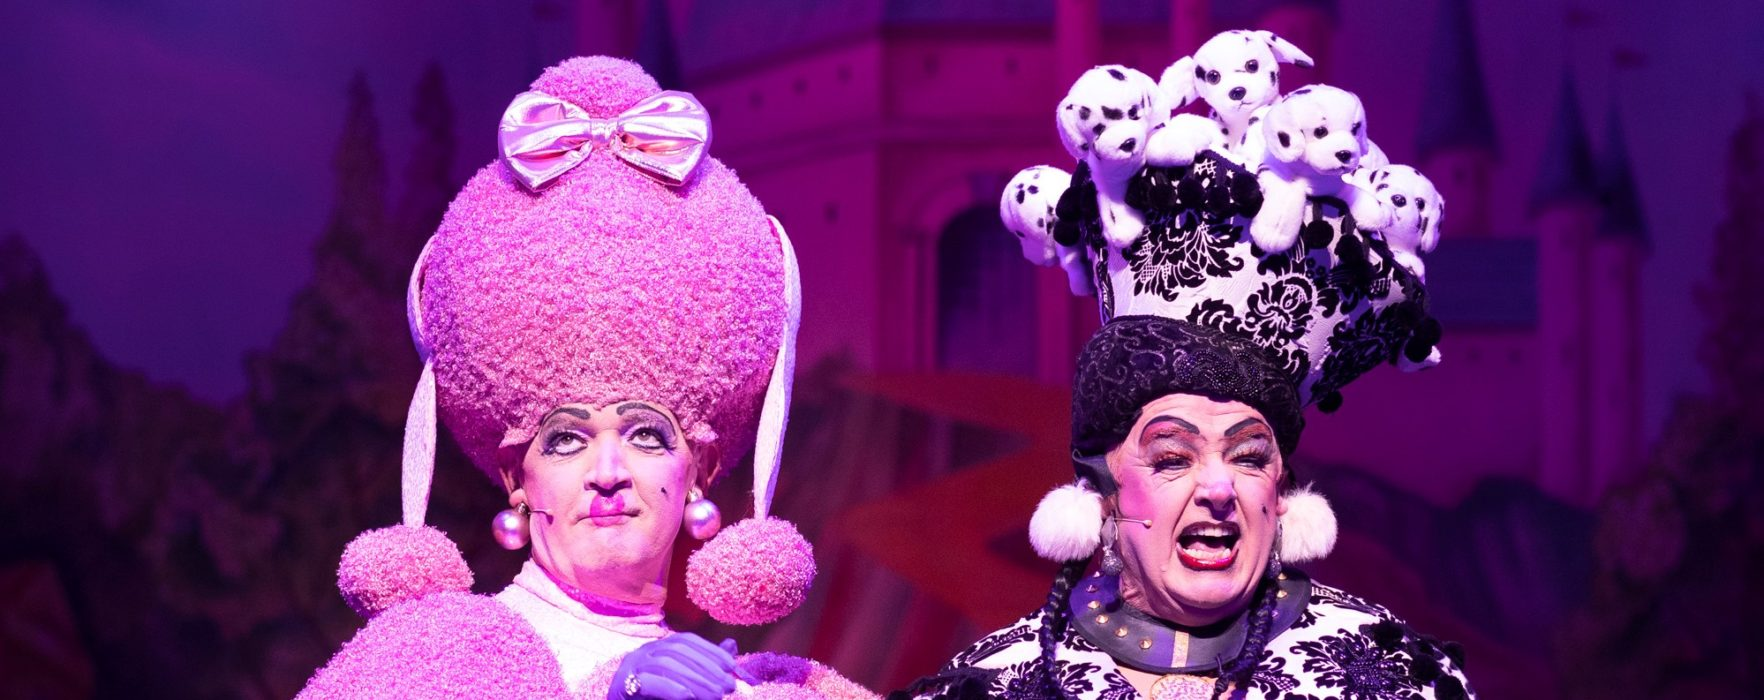 REVIEWED: Cinderella at the Opera House